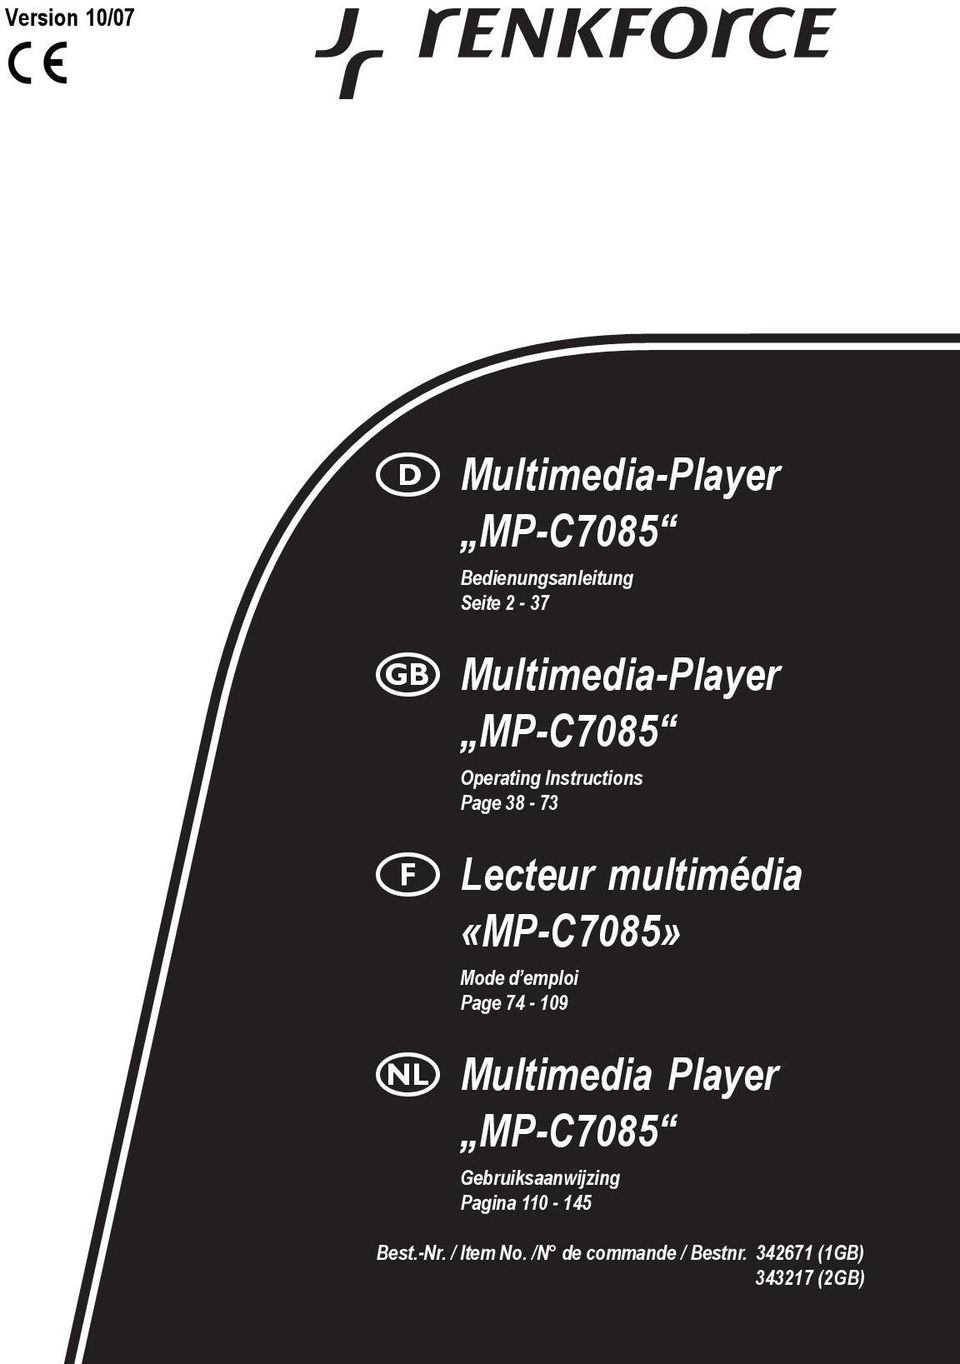 «MP-C7085» Mode d emploi Page 74-109 Multimedia Player MP-C7085